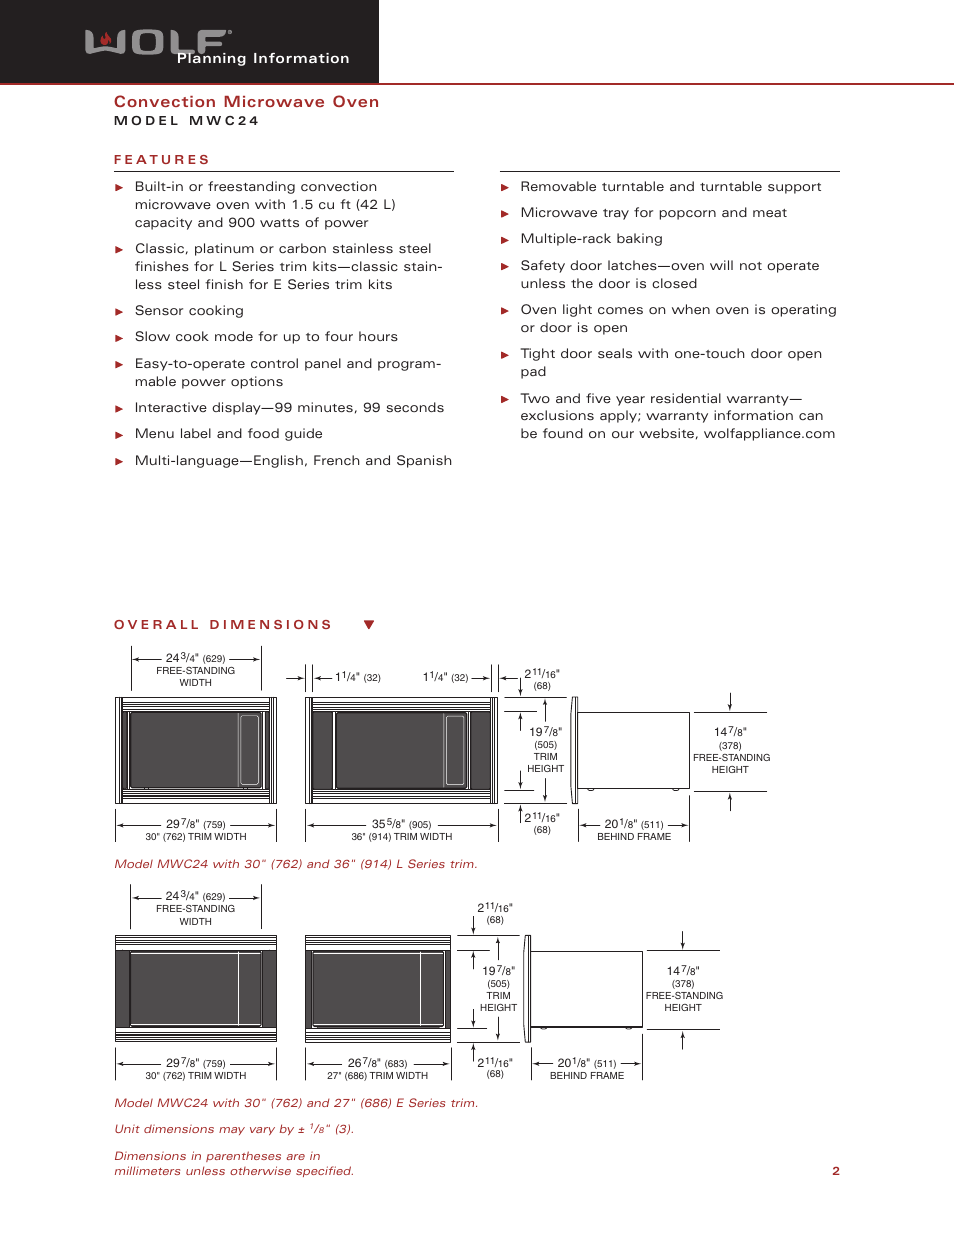 Convection Microwave Oven Wolf Appliance Company Mwc24